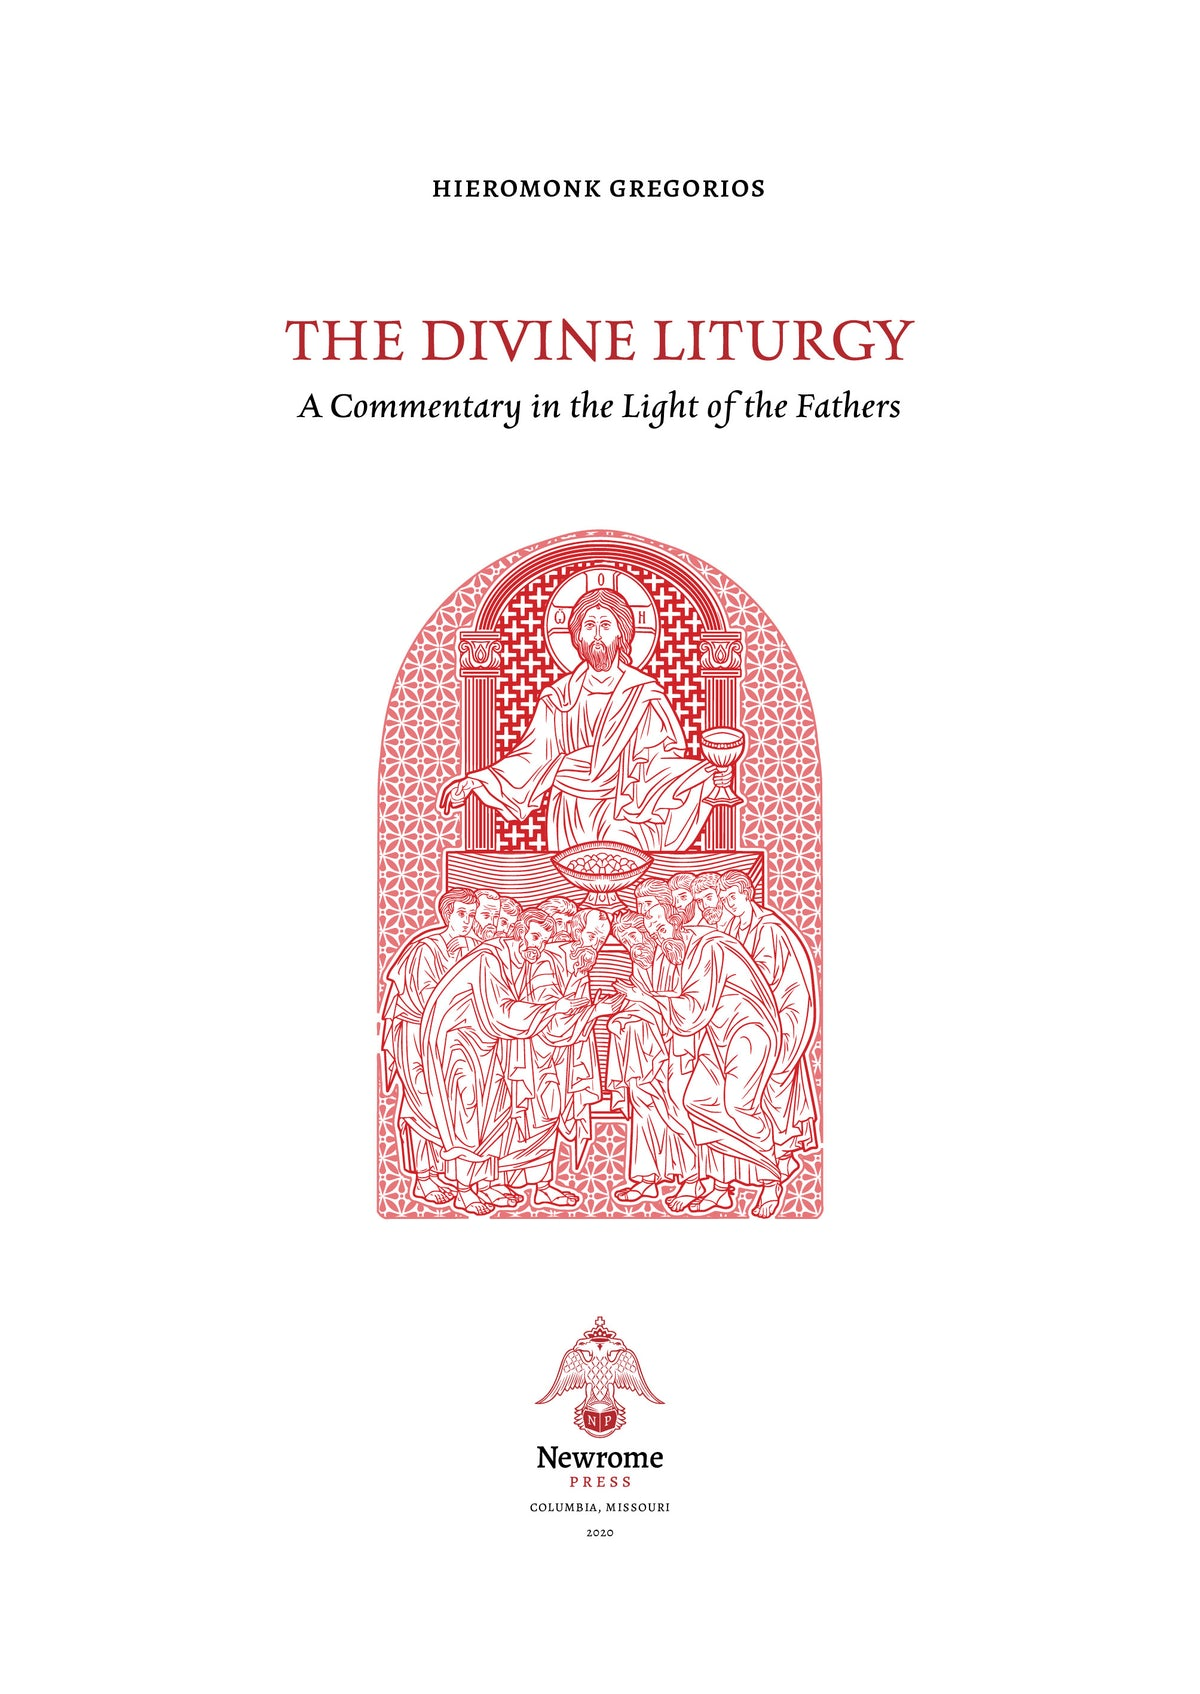 The Divine Liturgy: A Commentary in the Light of the Fathers (Hardcover)